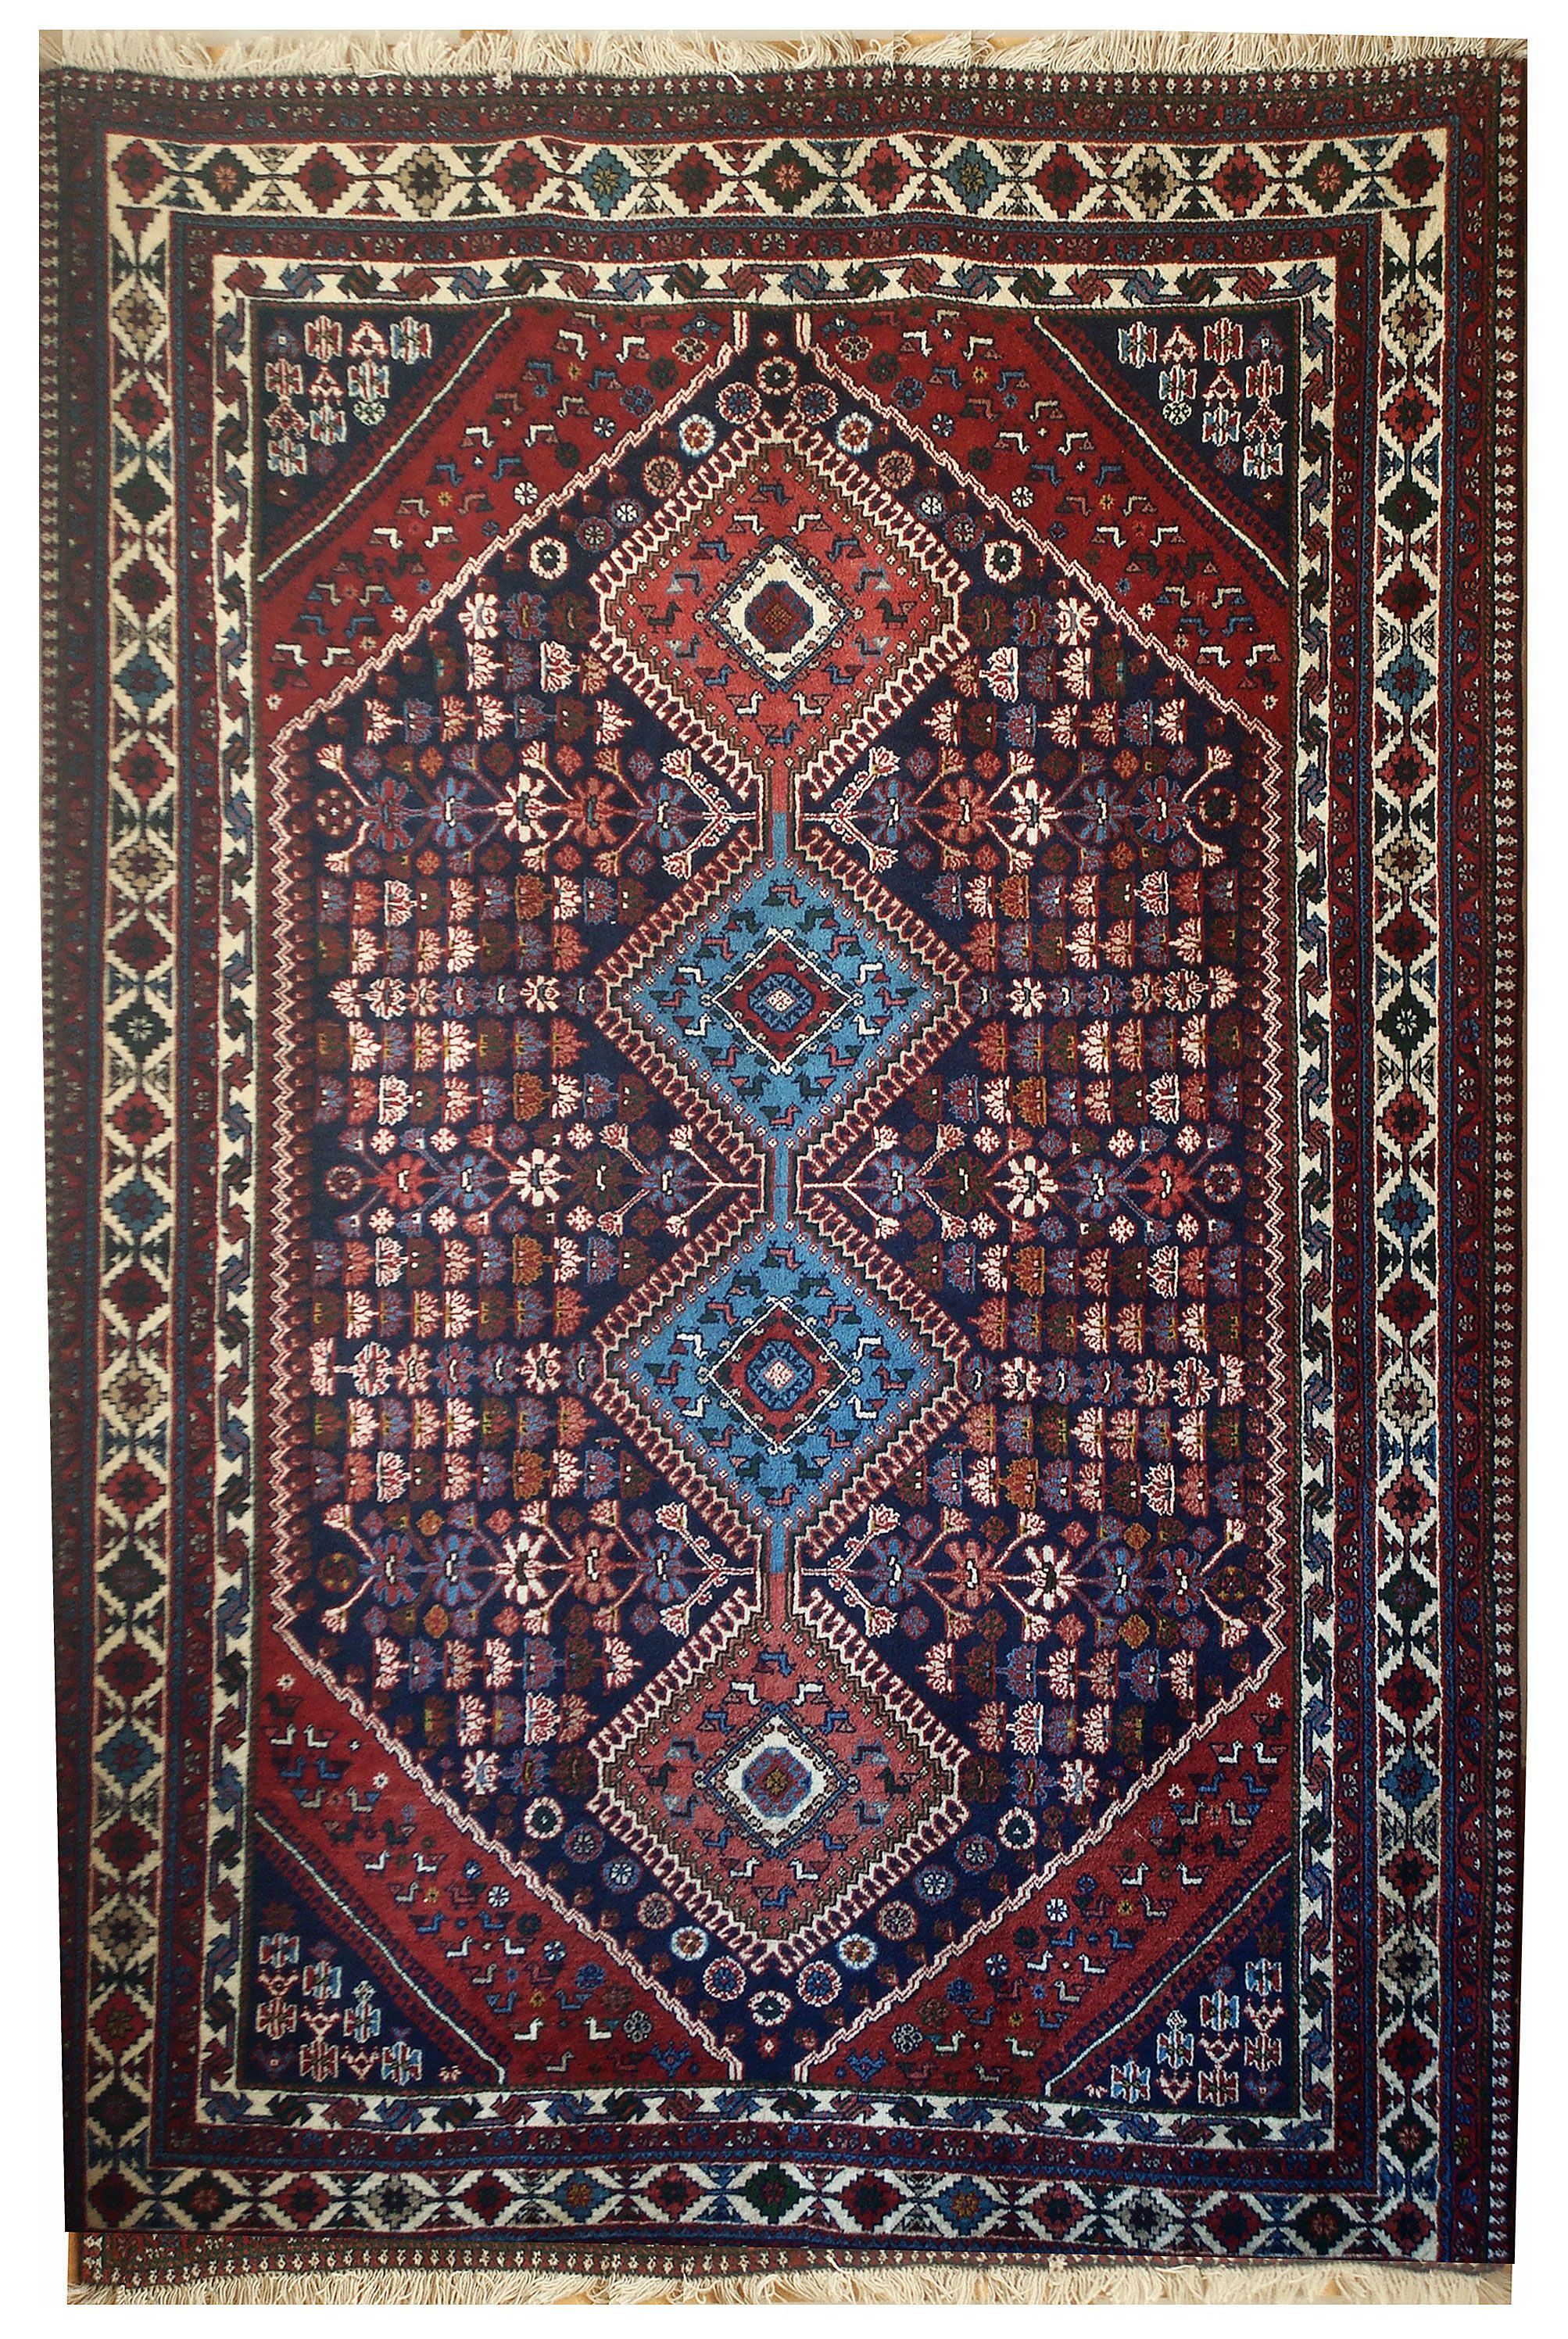 W Warwick RI   Intricate NEW Hand Woven Rugs   Cabot House Furniture   555  Quaker